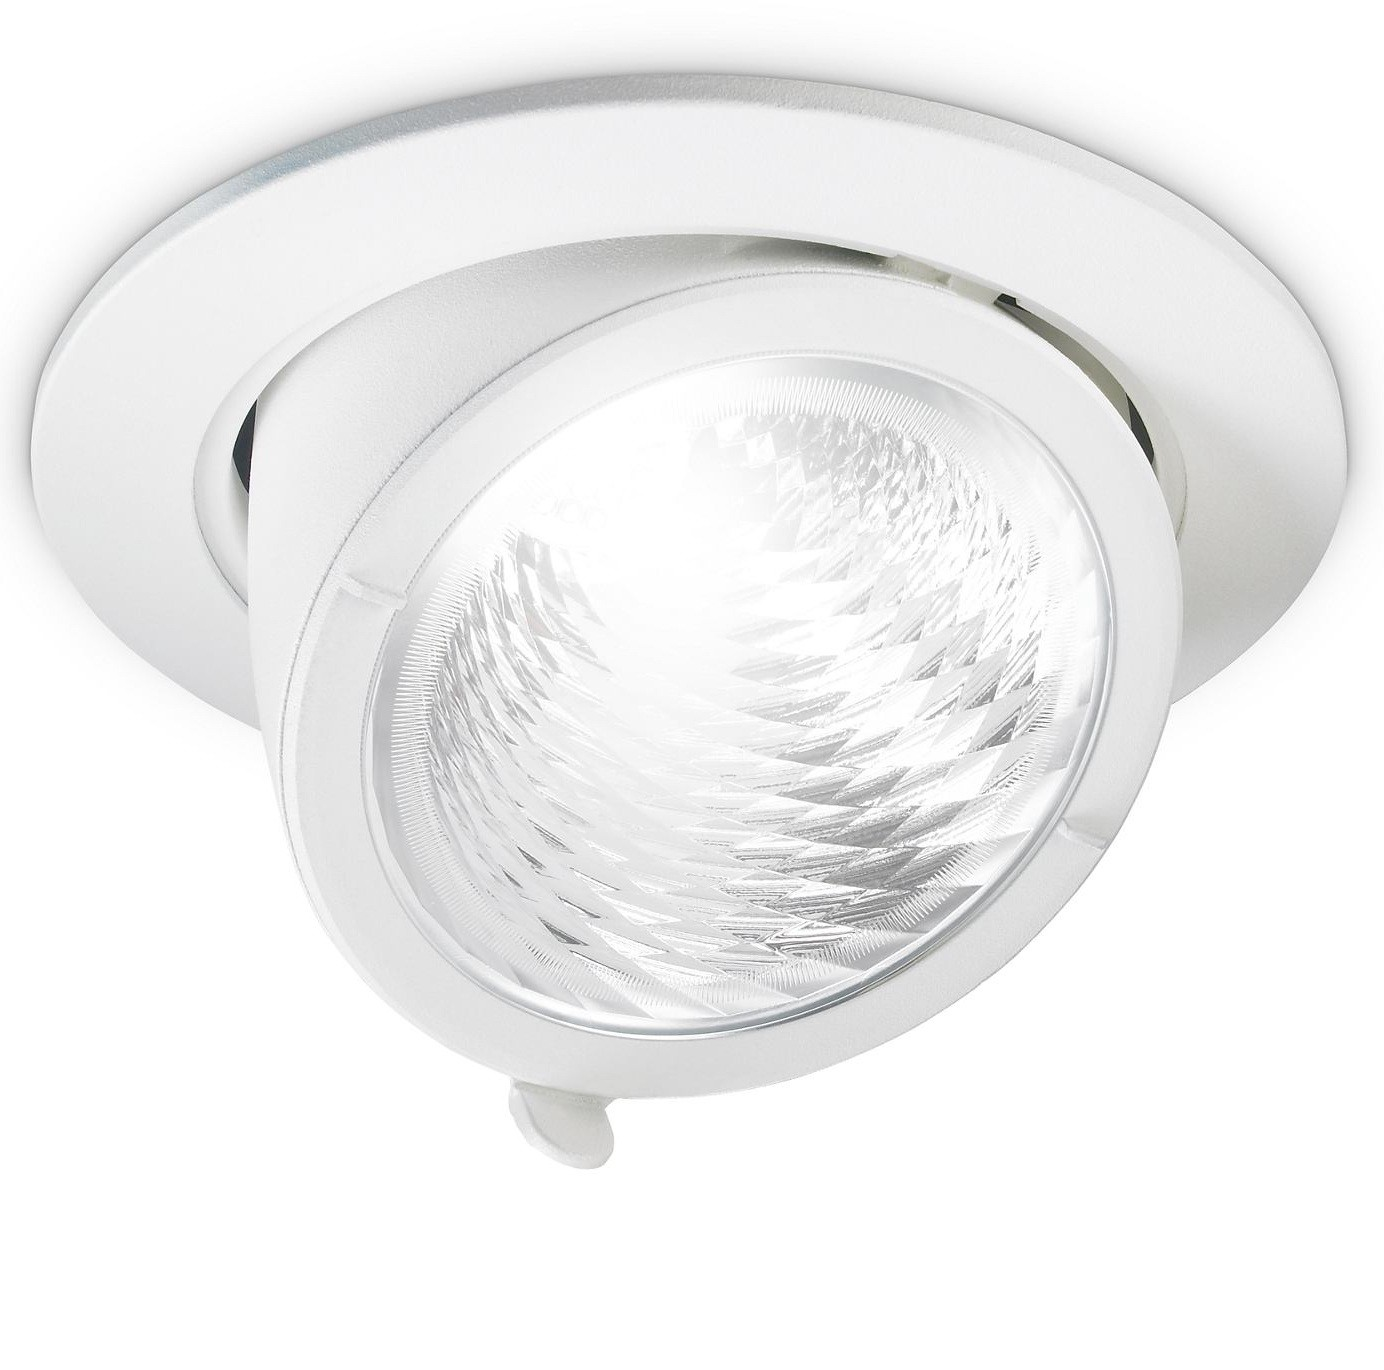 Philips LuxSpace Accent LED Recessed Downight ADJ ELBOW 3200LM